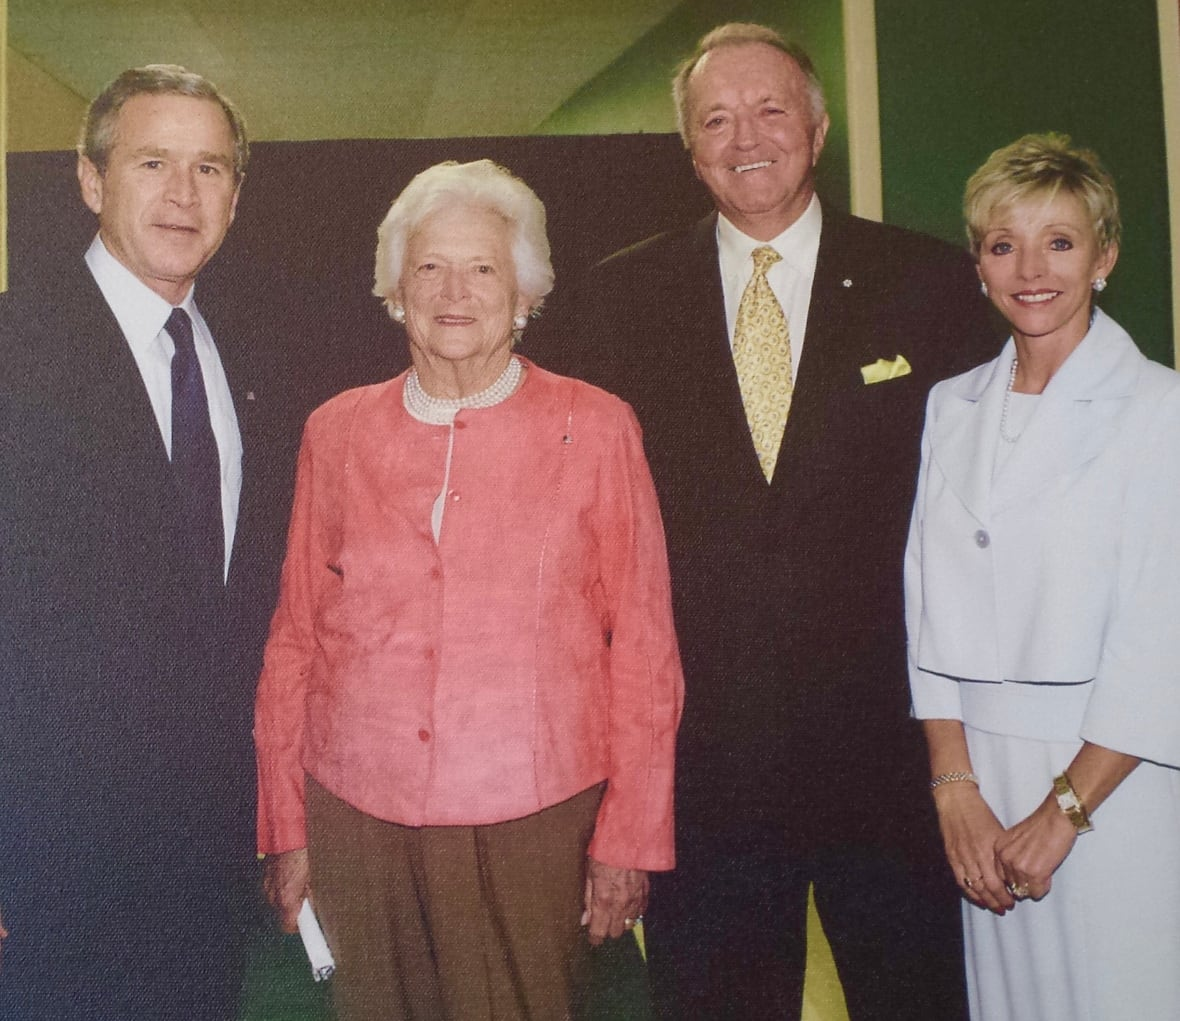 Pope Francis sends words of comfort to Bush family